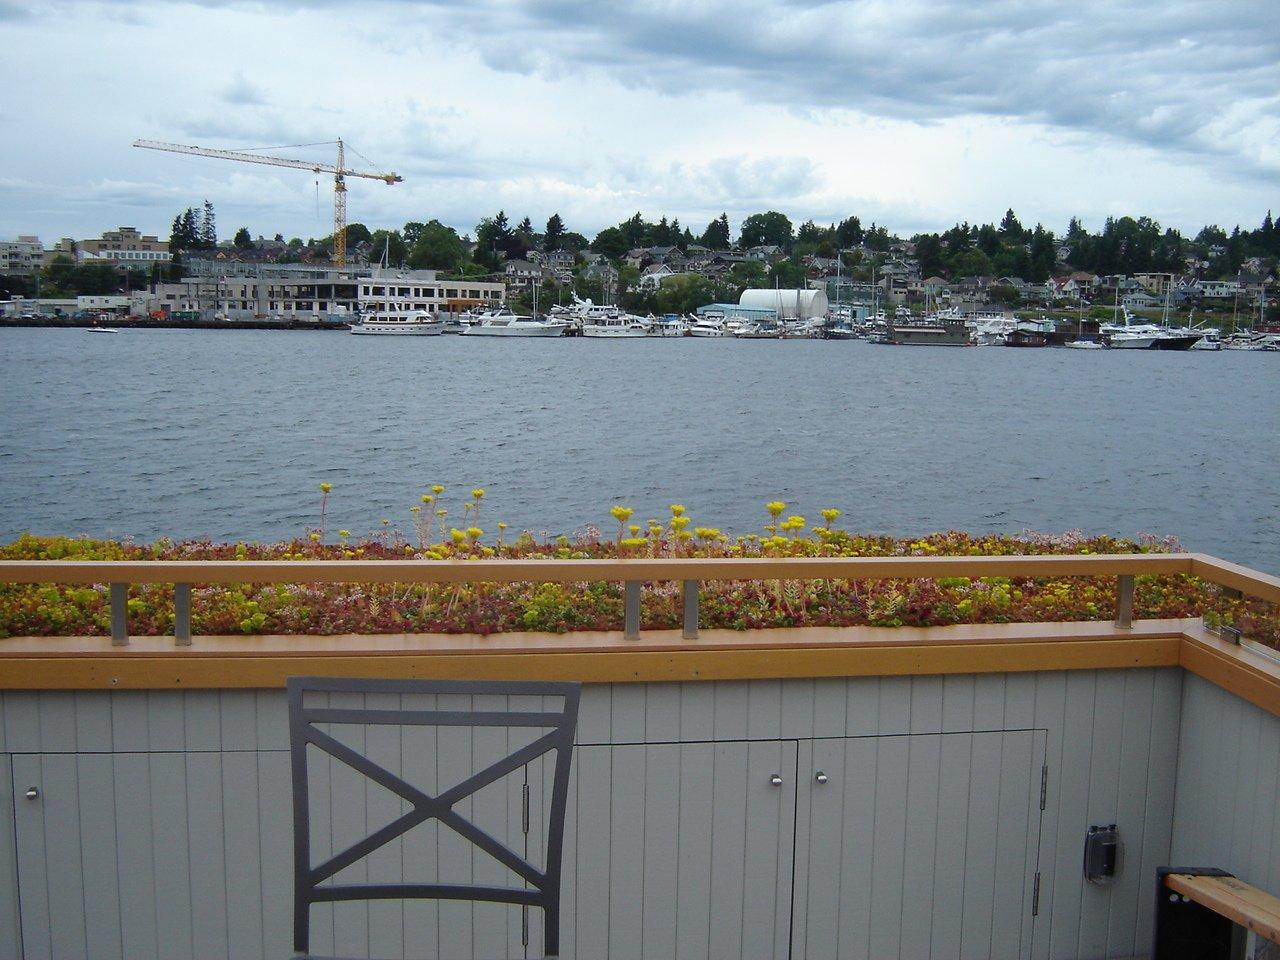 2012.6.28 Lake Union Floating Home (4)